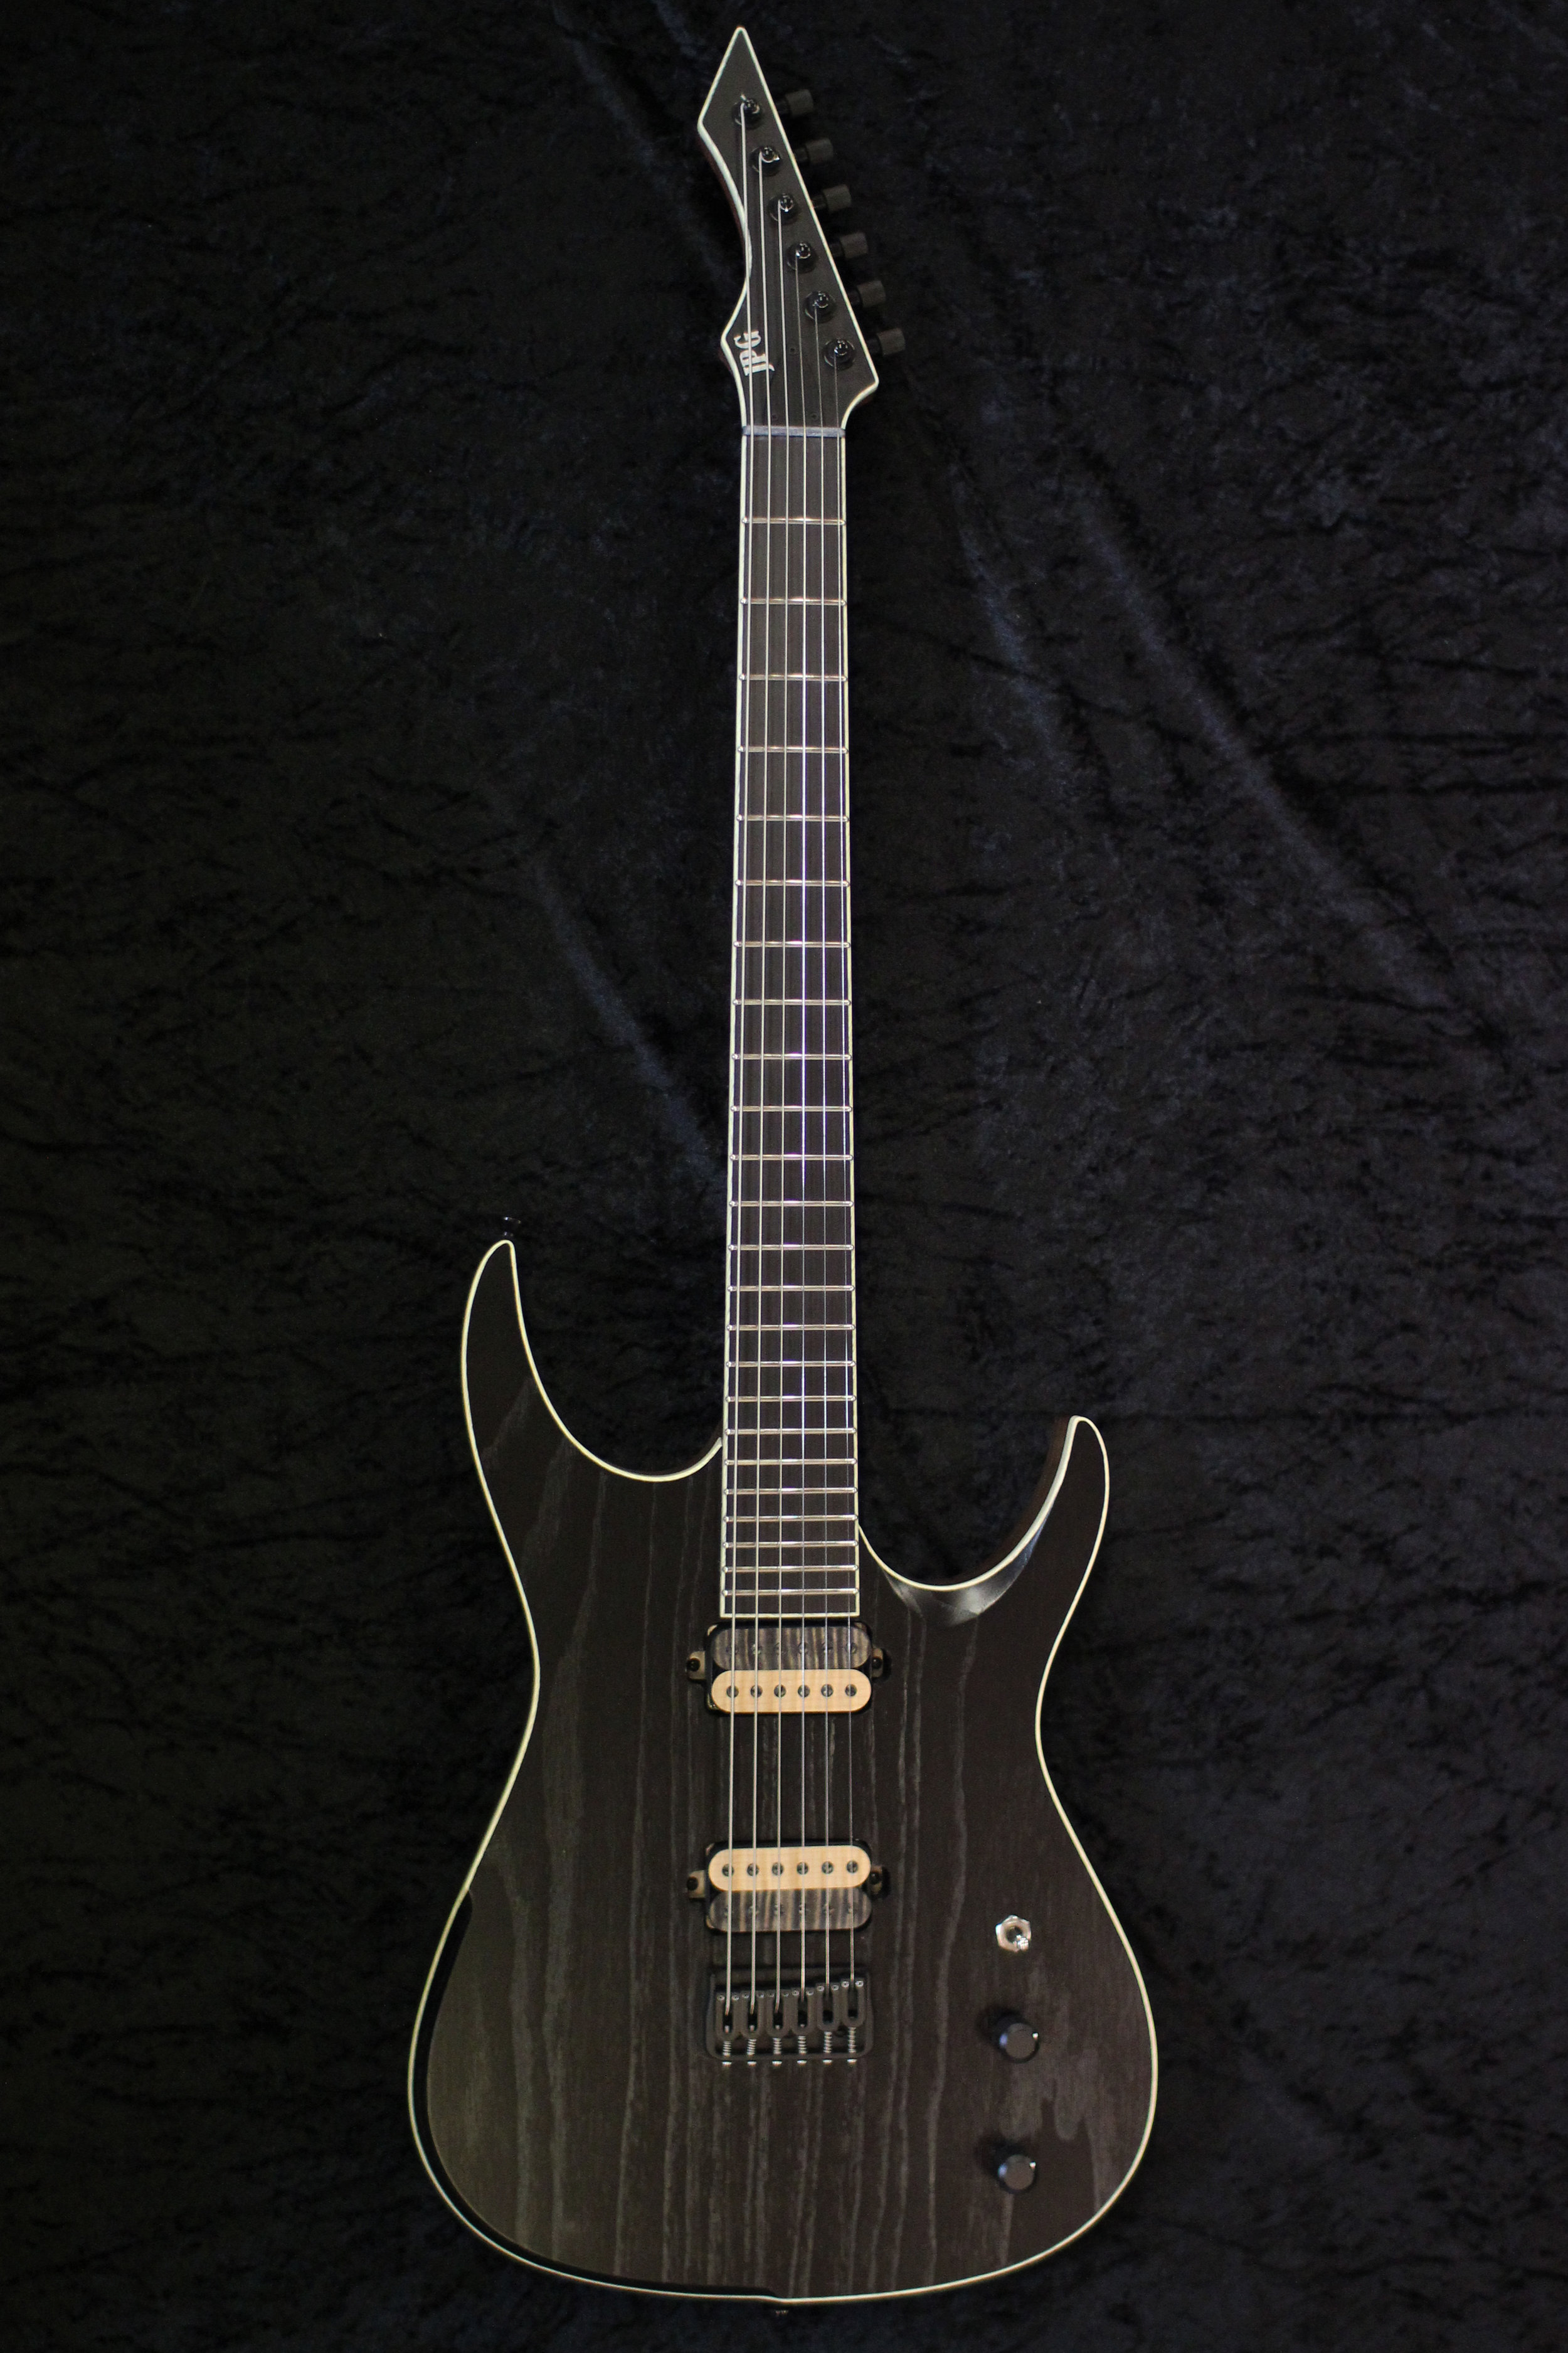 JPM - A Contemporary Chuggernaut, available in 6,7 & 8-string Models, Straight Scales & Multi-Scales.Starting from £1,700